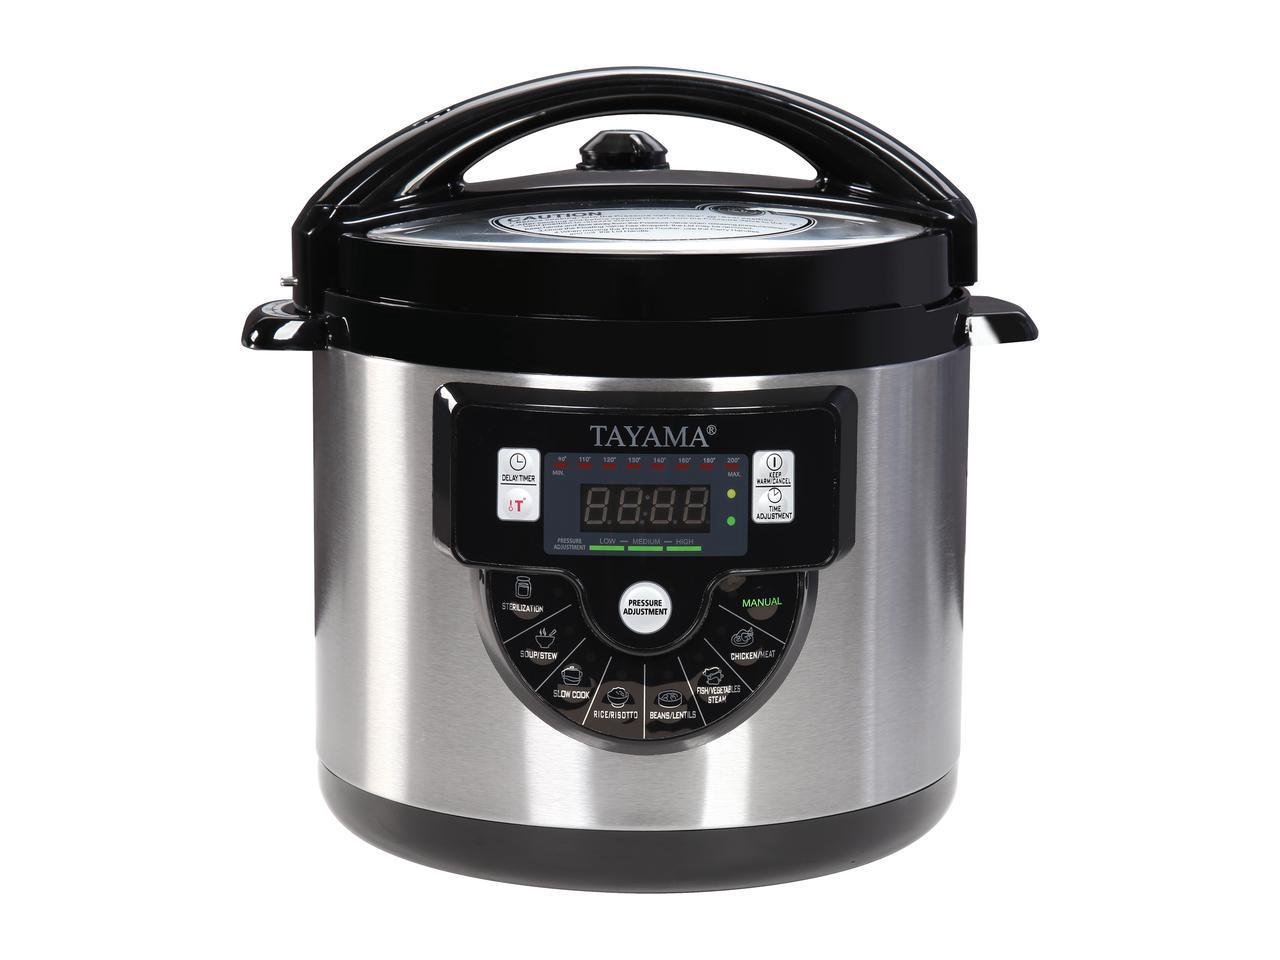 Tayama TMC-60XL 6 quart 8-in-1 Multi-Function Pressure Cooker, Black